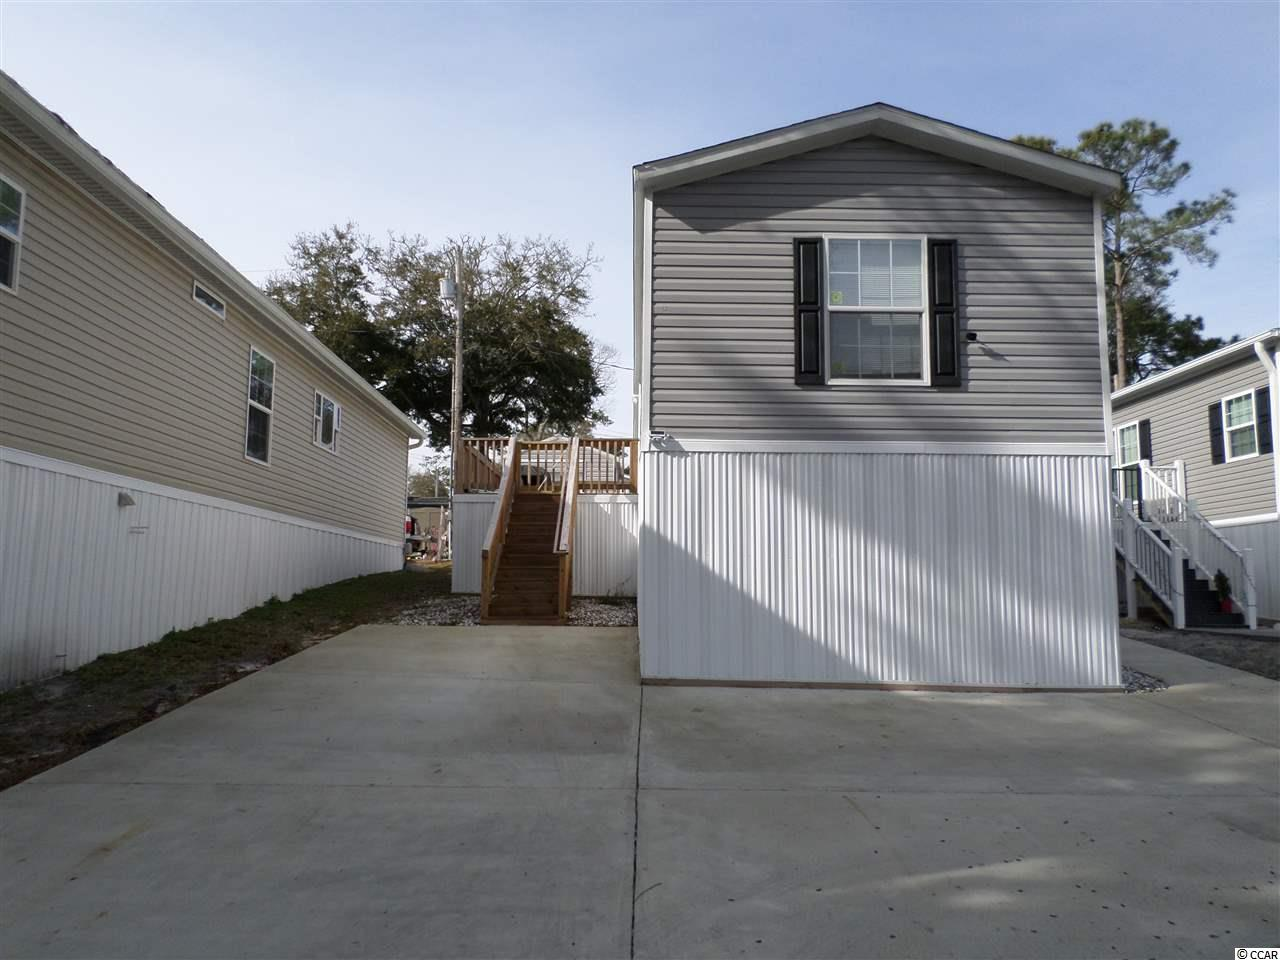 Location, location!  This beautiful 2018 Fleetwood Westfield 16 X 66 Manufactured home is ready for immediate occupancy in the desirable Apache Campground which offers residential annual leases and vacation spots.  The home has a large 10 X 20 front deck with security gate, 4 X 6 rear deck, 10 X 14 storage building with galvanized metal roof,  3 car cement park pad and sidewalk.   The home boasts residential sheetrock throughout, freshly painted, whirlpool kitchen appliances to include, stove, refrigerator, dishwasher. Formica countertops and plenty of cabinet space adorn the kitchen area.  The washer and dryer conveys with the sale.  There is a storage door on the back of the homes vinyl underpinning to allow for additional storage of beach chairs, children toys, Christmas decorations, etc.  The 3 ton HVAC has a cover to restrict debris entry. Thermopane windows are featured throughout.  Ceiling fans have been installed in the den/kitchen/master bedroom.  Floor covering is linoleum which is easily maintained.  This beautiful home is a short walk or golf cart ride away from the beautiful Apache pier and Atlantic Ocean. Apache Campground has two pools, a general store, playground area, arcade, restaurant, the pier featuring entertainment and beach access. This location and property is absolutely beautiful and a must see!